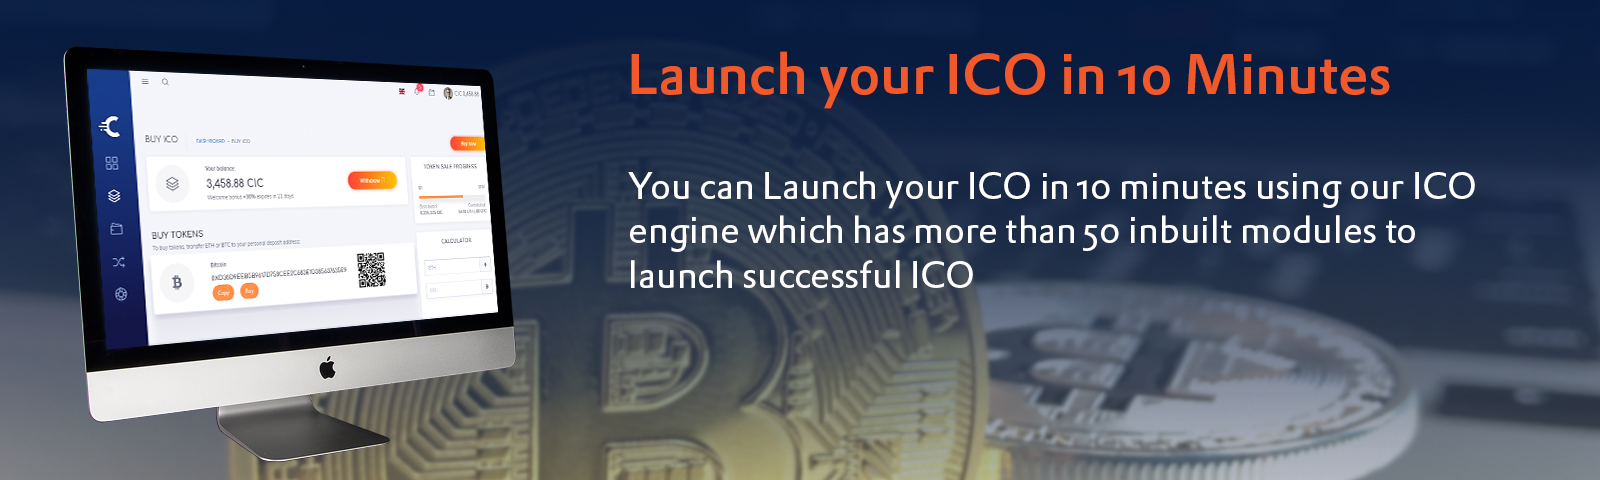 Launch ICO in 10 Minutes